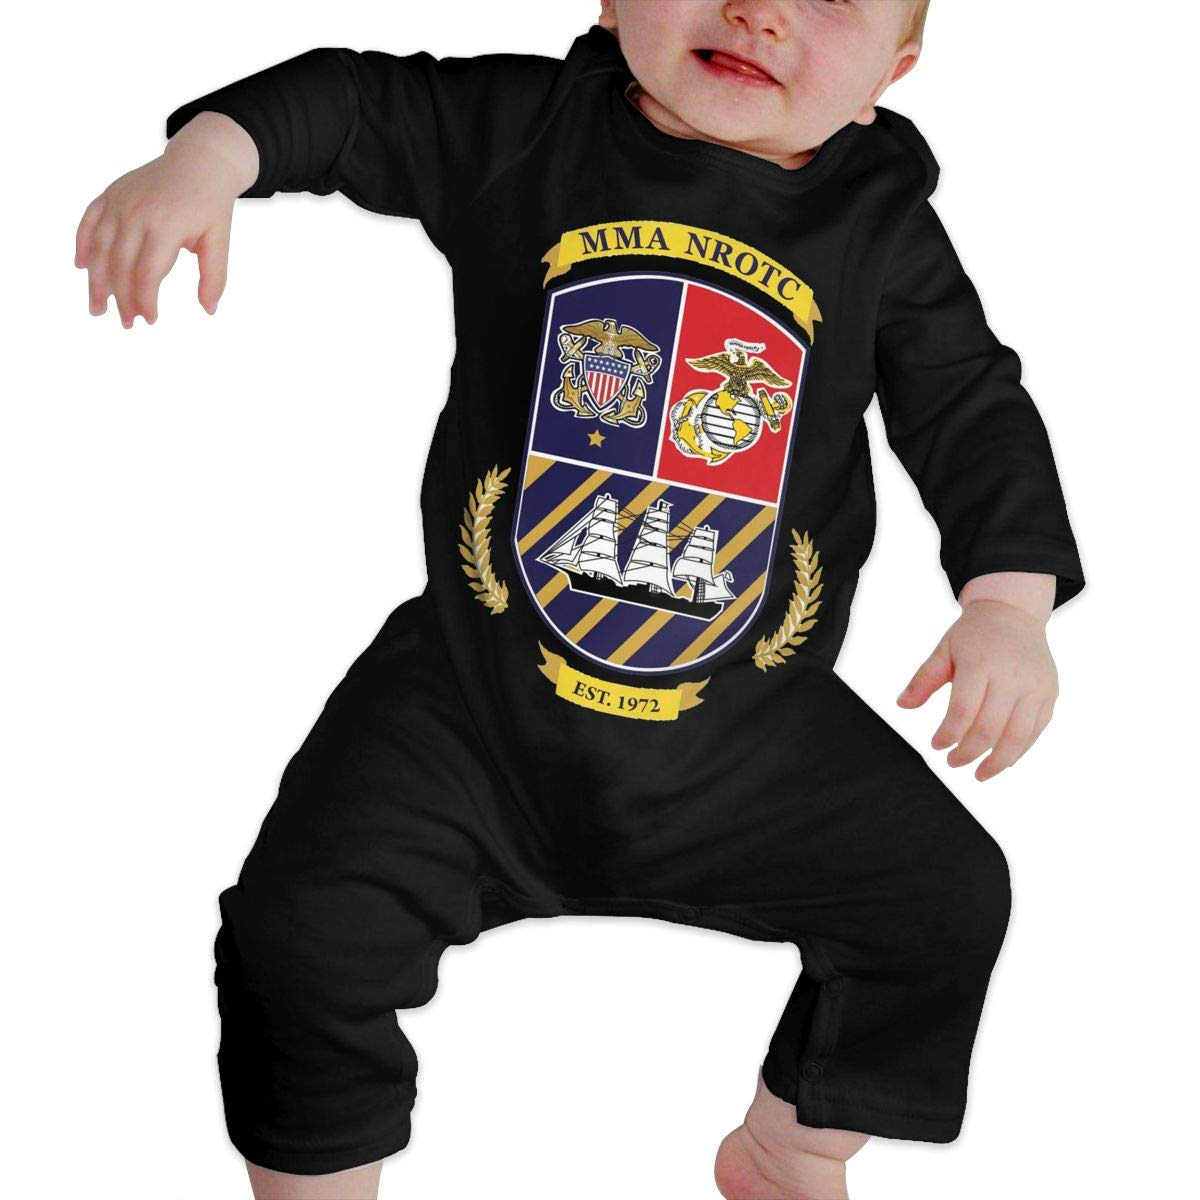 Fasenix Maine Maritime Academy Newborn Baby Boy Girl Romper Jumpsuit Long Sleeve Bodysuit Overalls Outfits Clothes